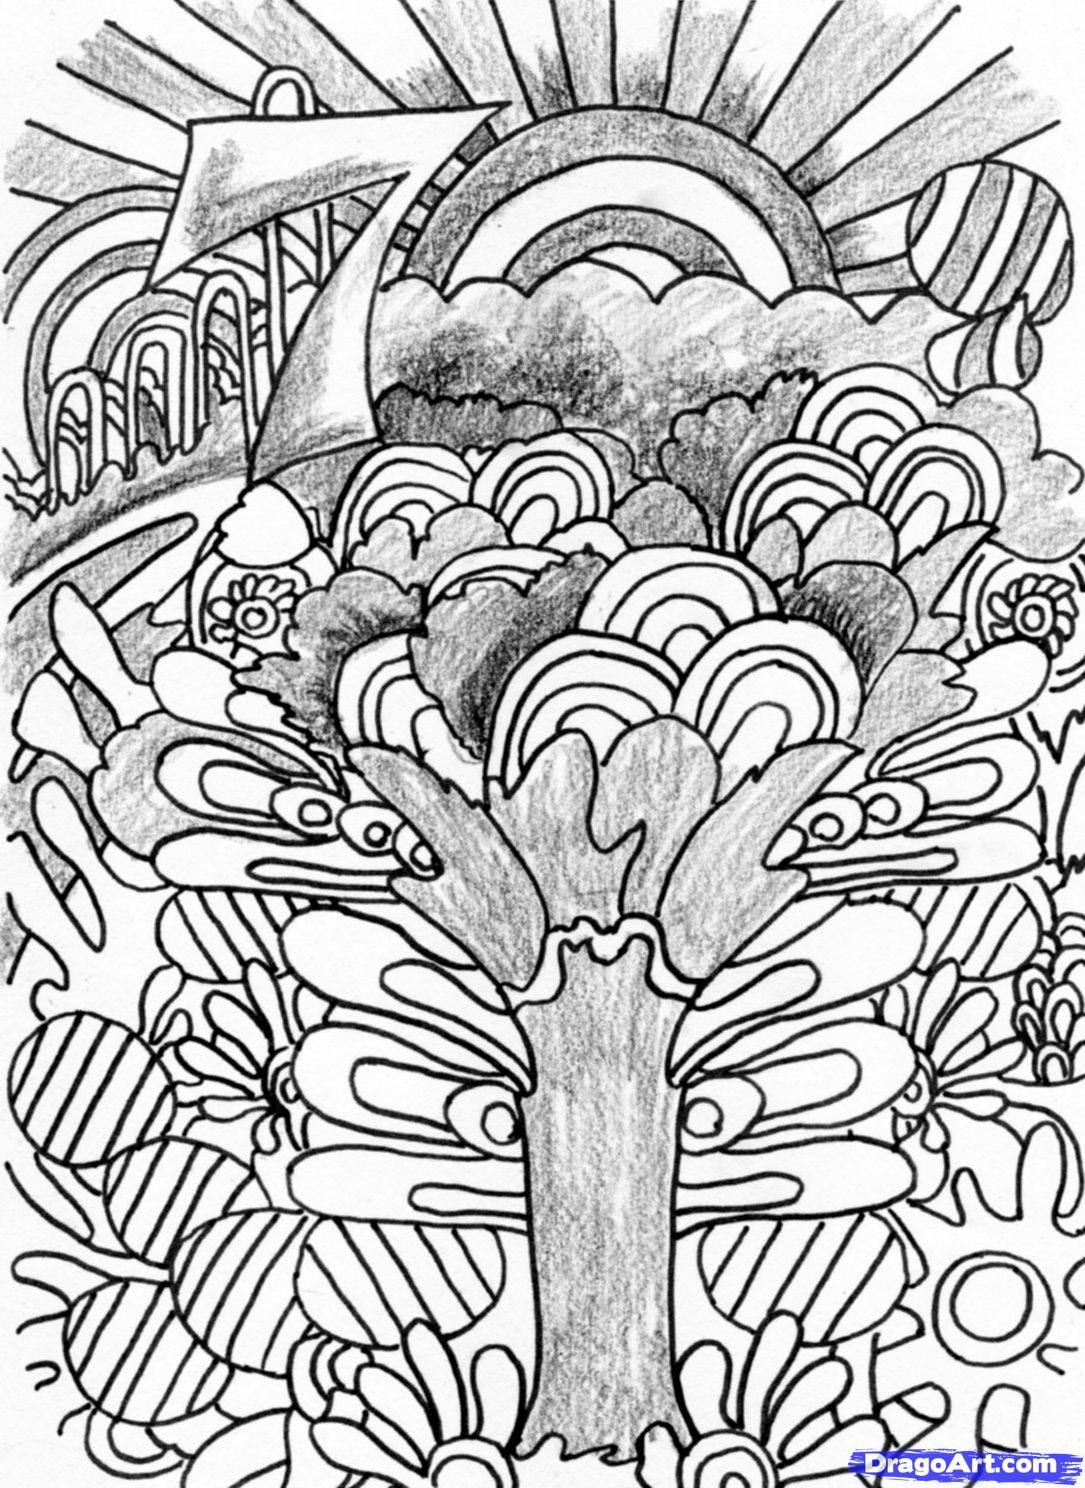 1085x1488 Cool Trippy Drawings Cool Trippy Things To Draw